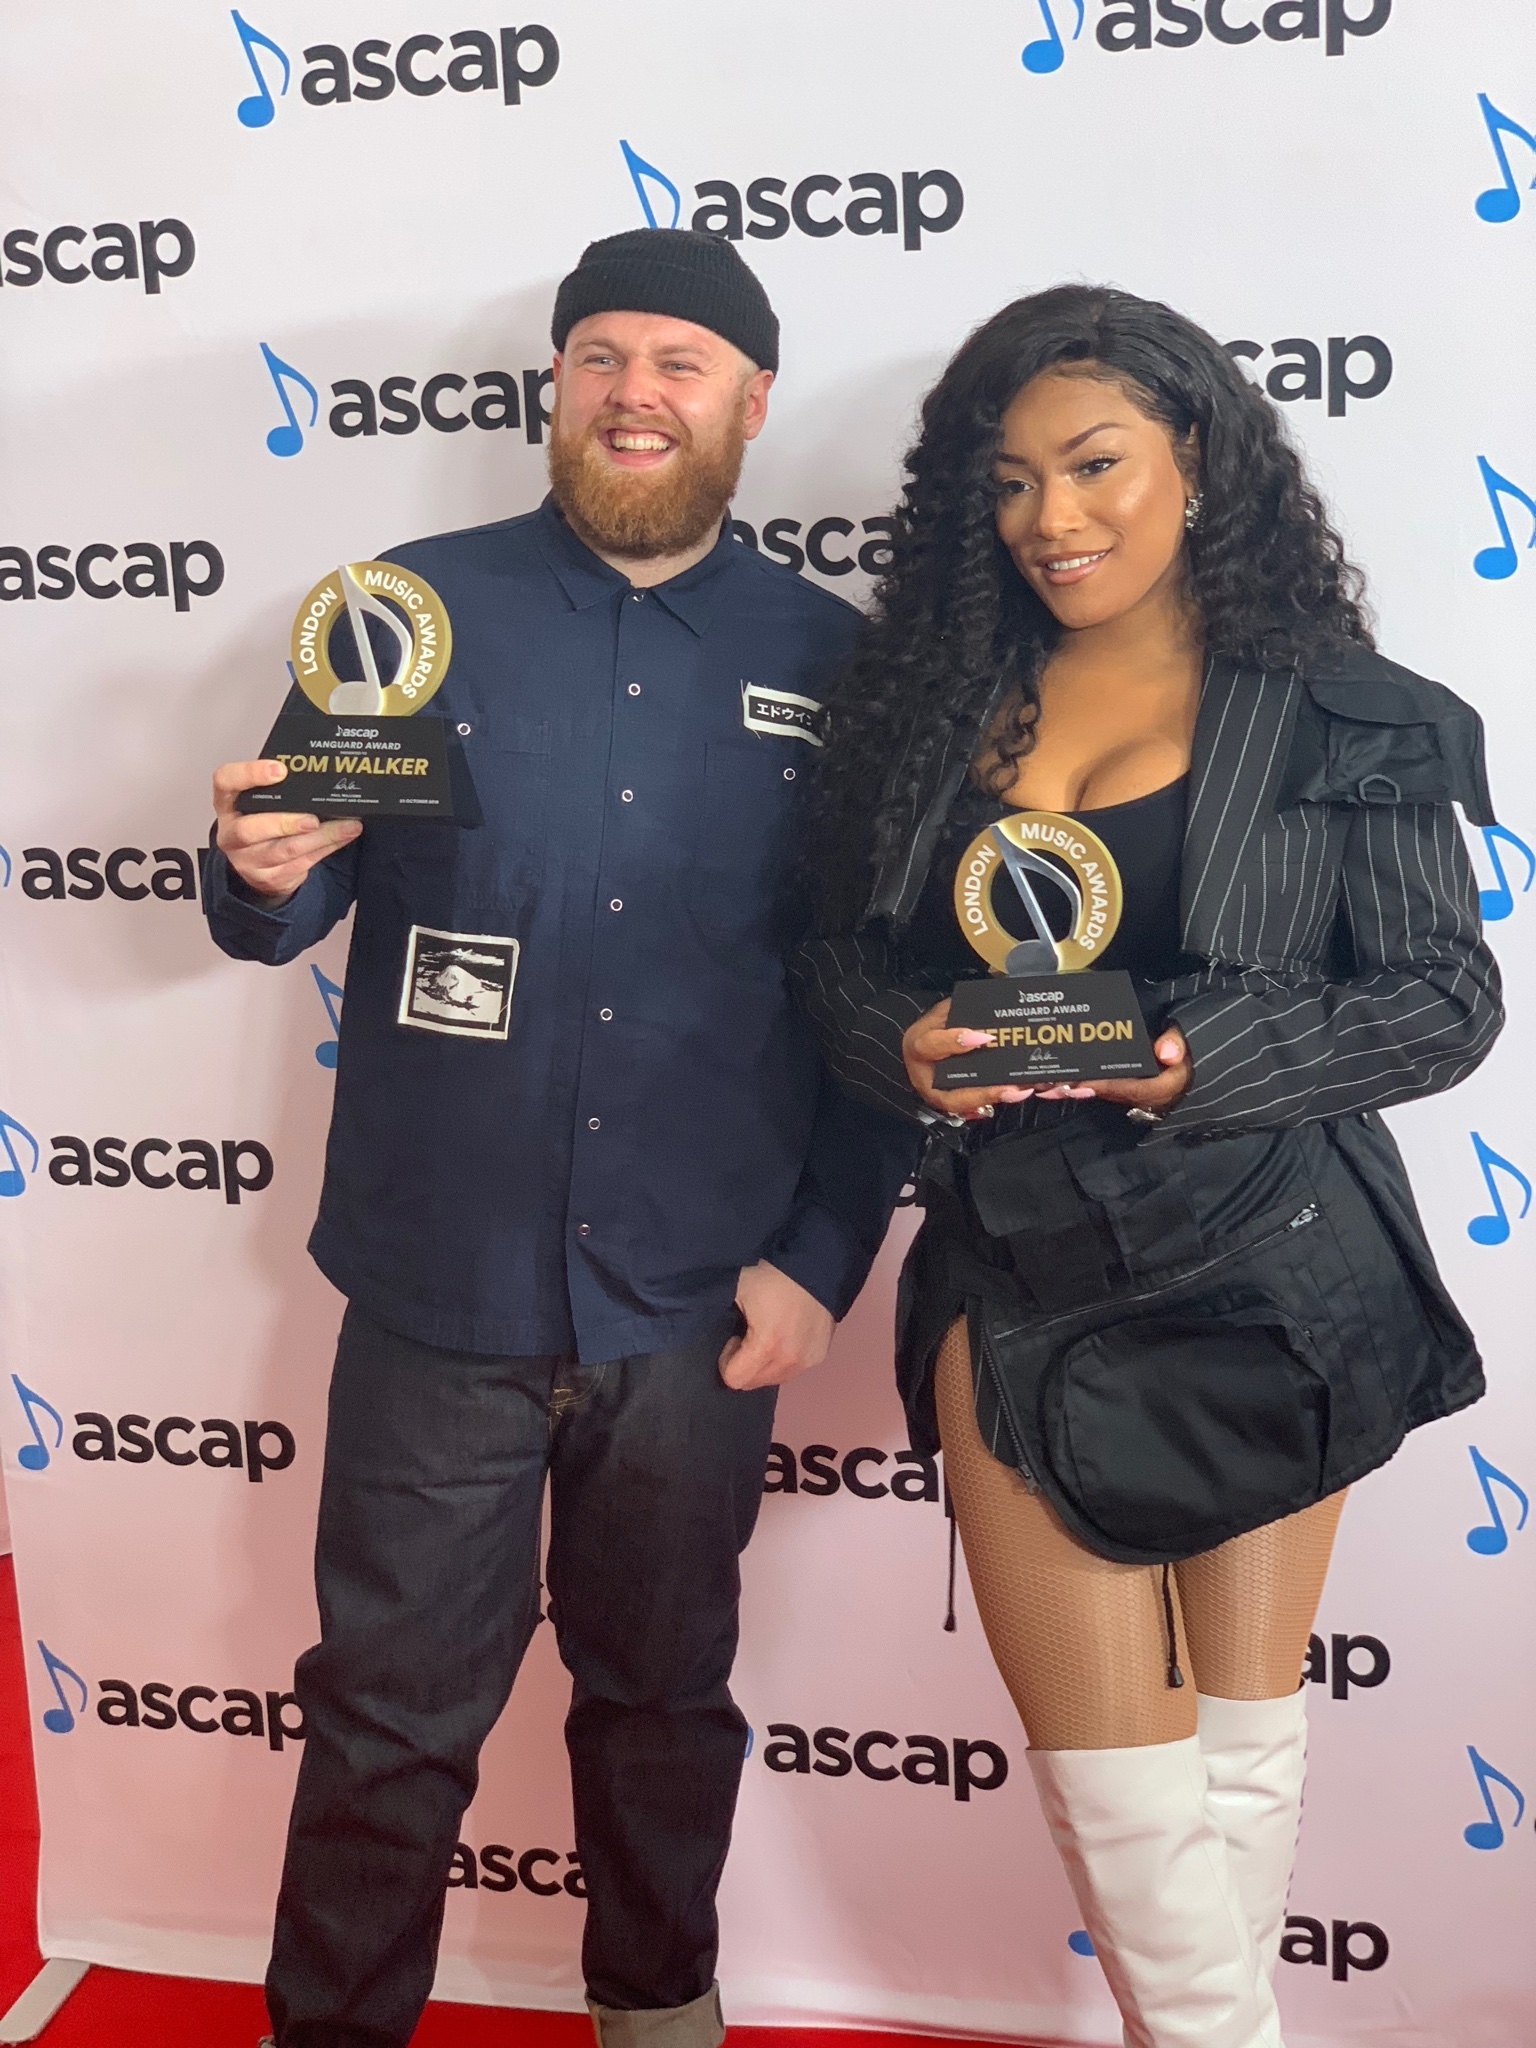 Tom Walker and Stefflon Don receiving the ASCAP Vanguard Award 2018.